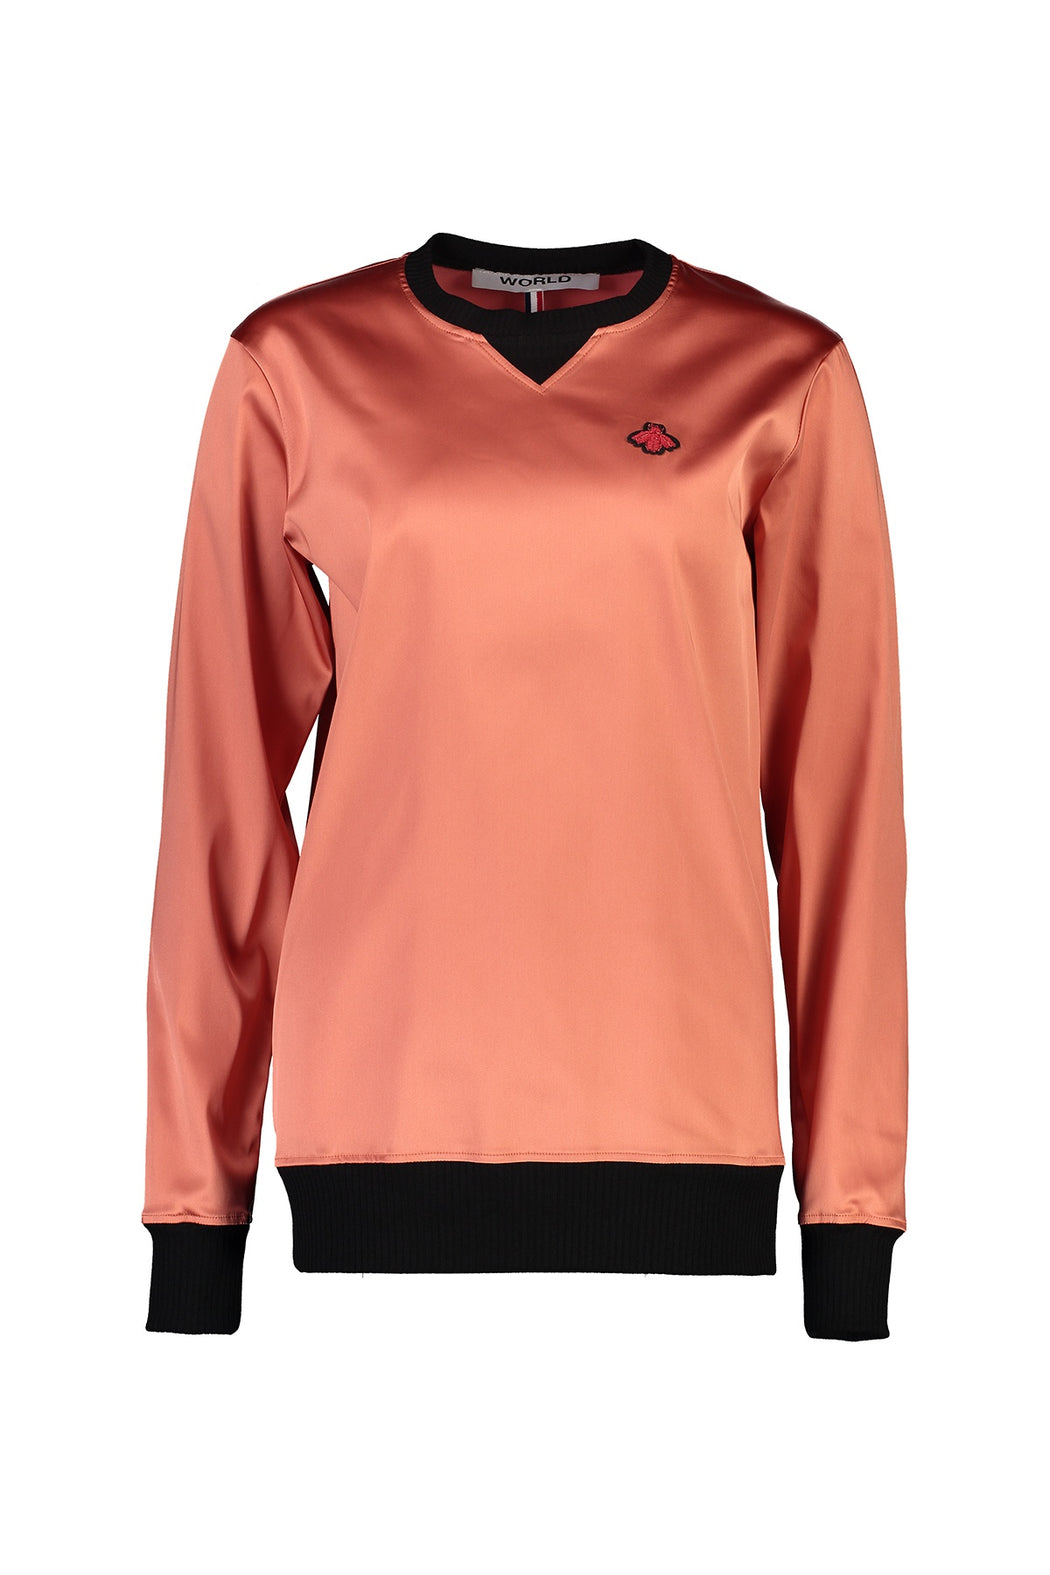 WORLD 4502 The Lover Jumper (Unisex) Blush